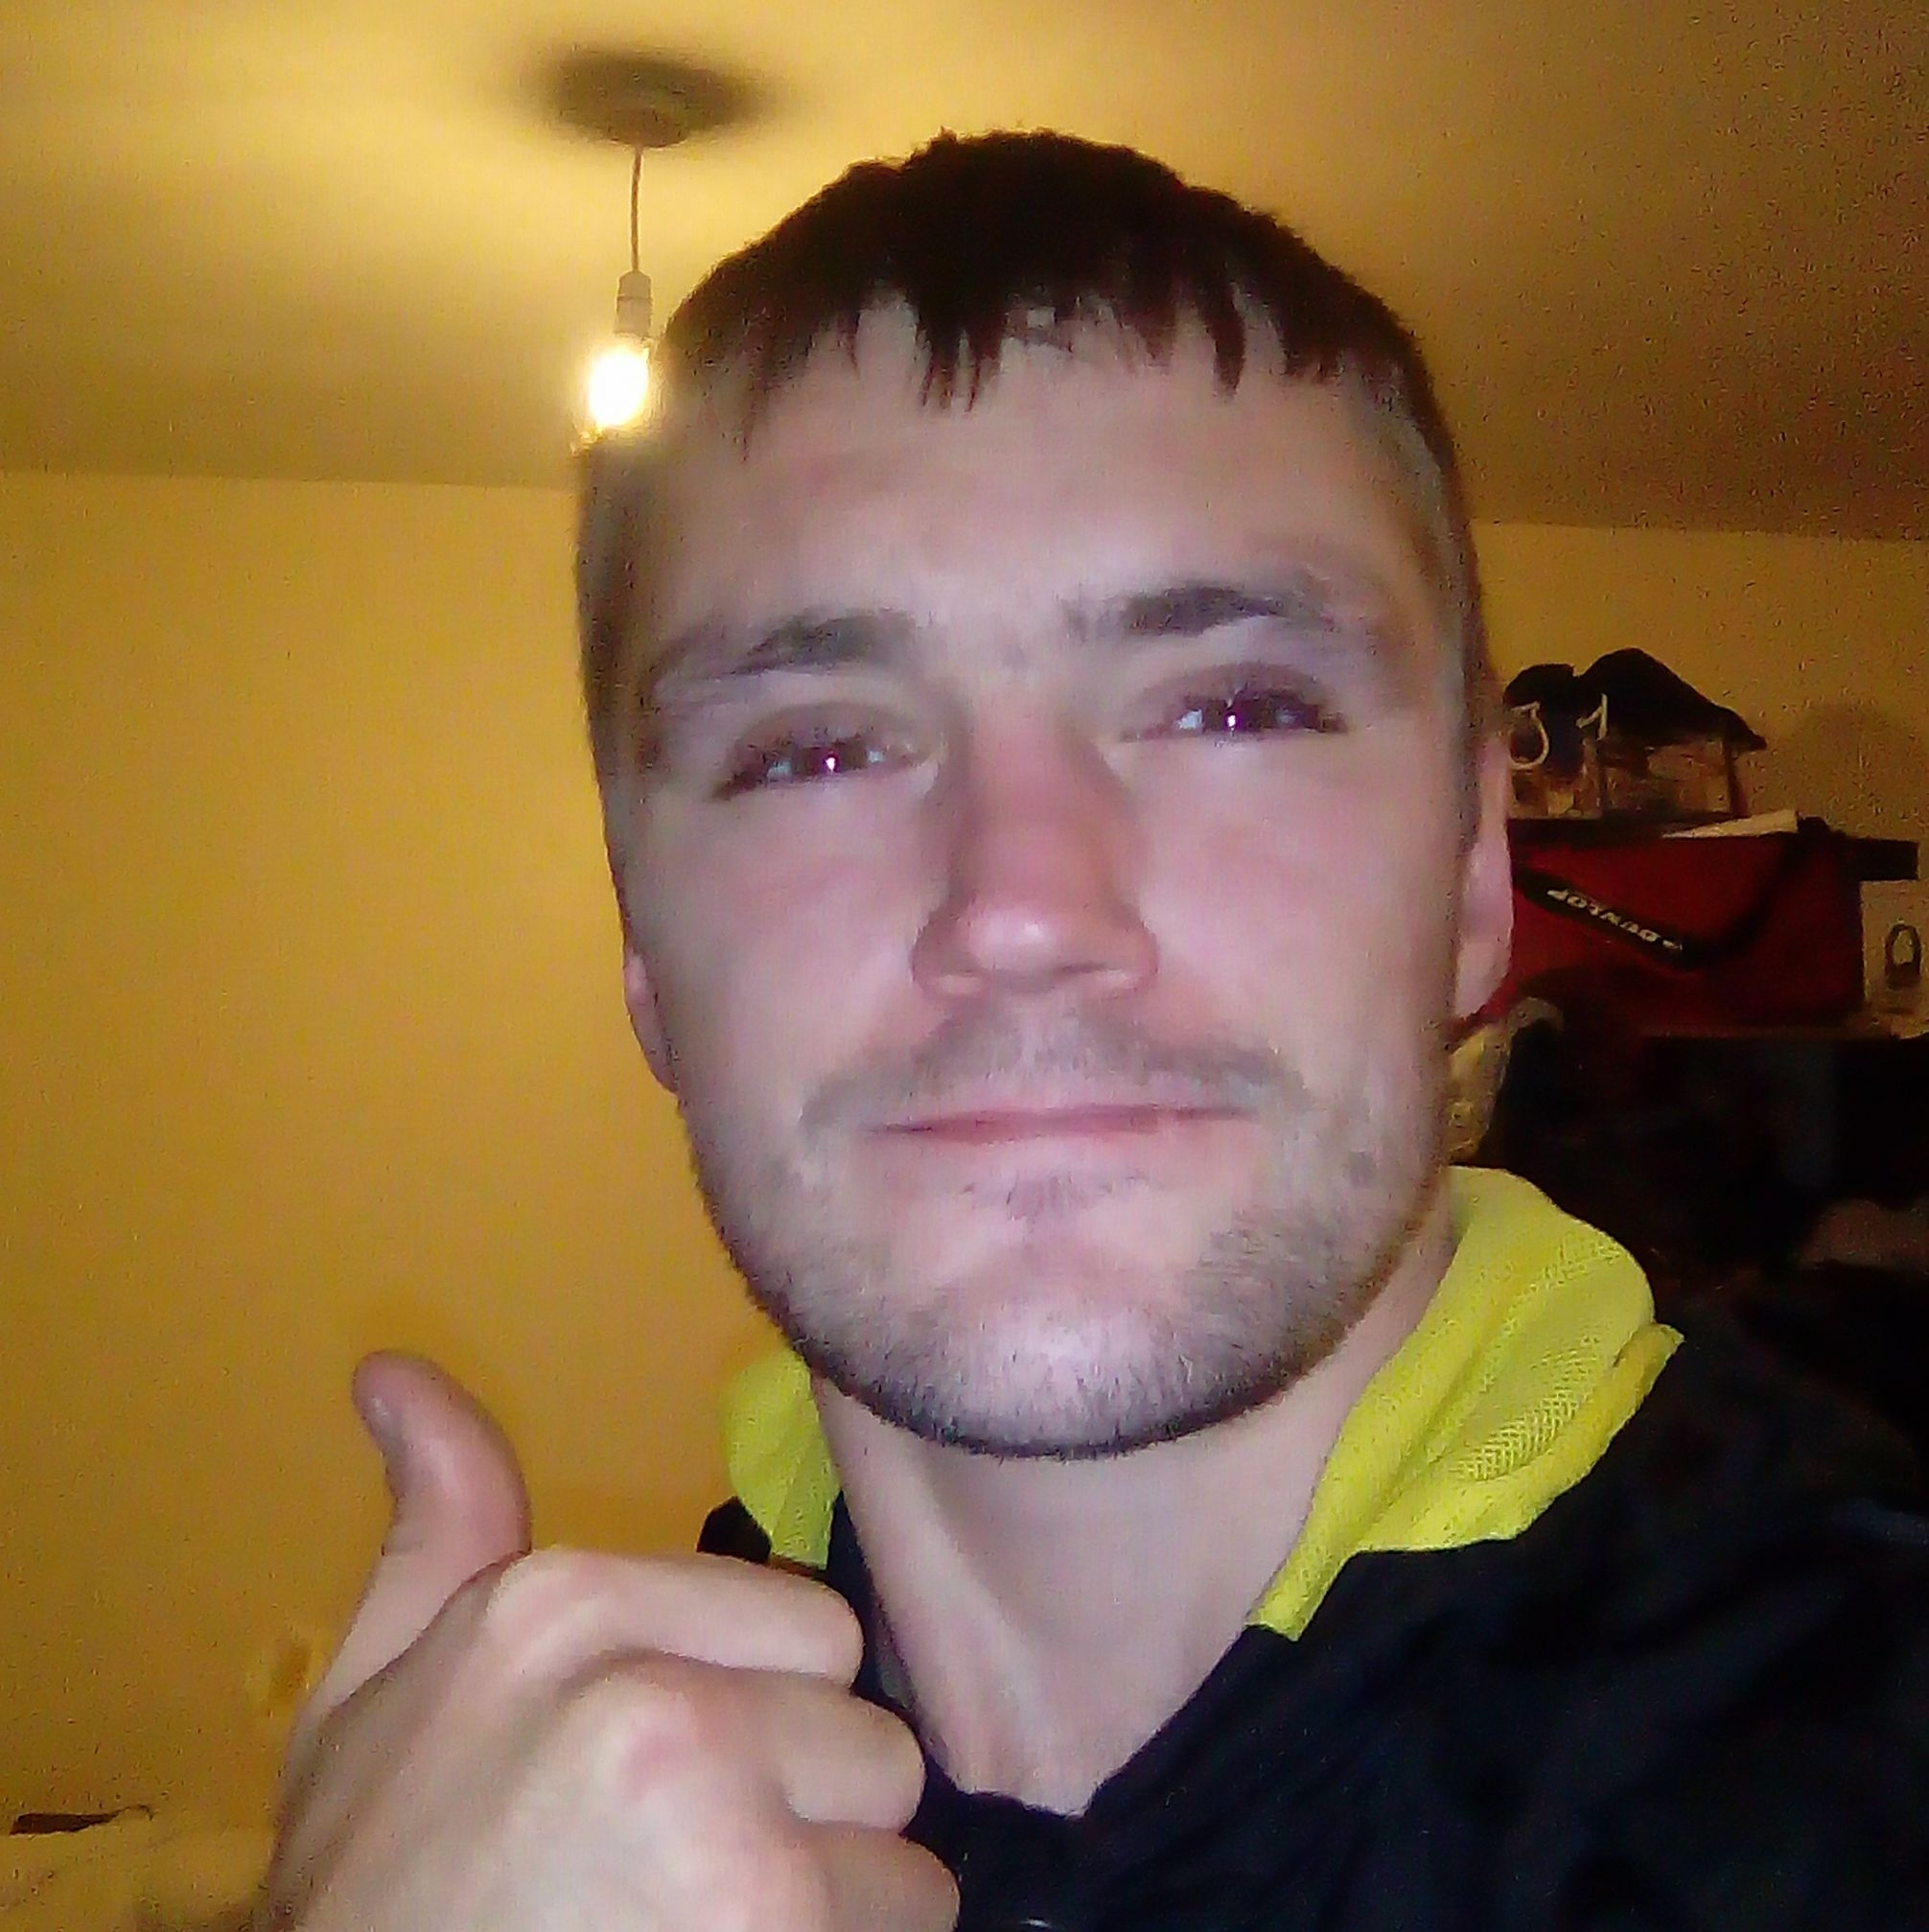 DIED: Man who died following assault in Byker is named as Ashley Cochrane, 29,  of Queens Road, Jesmond